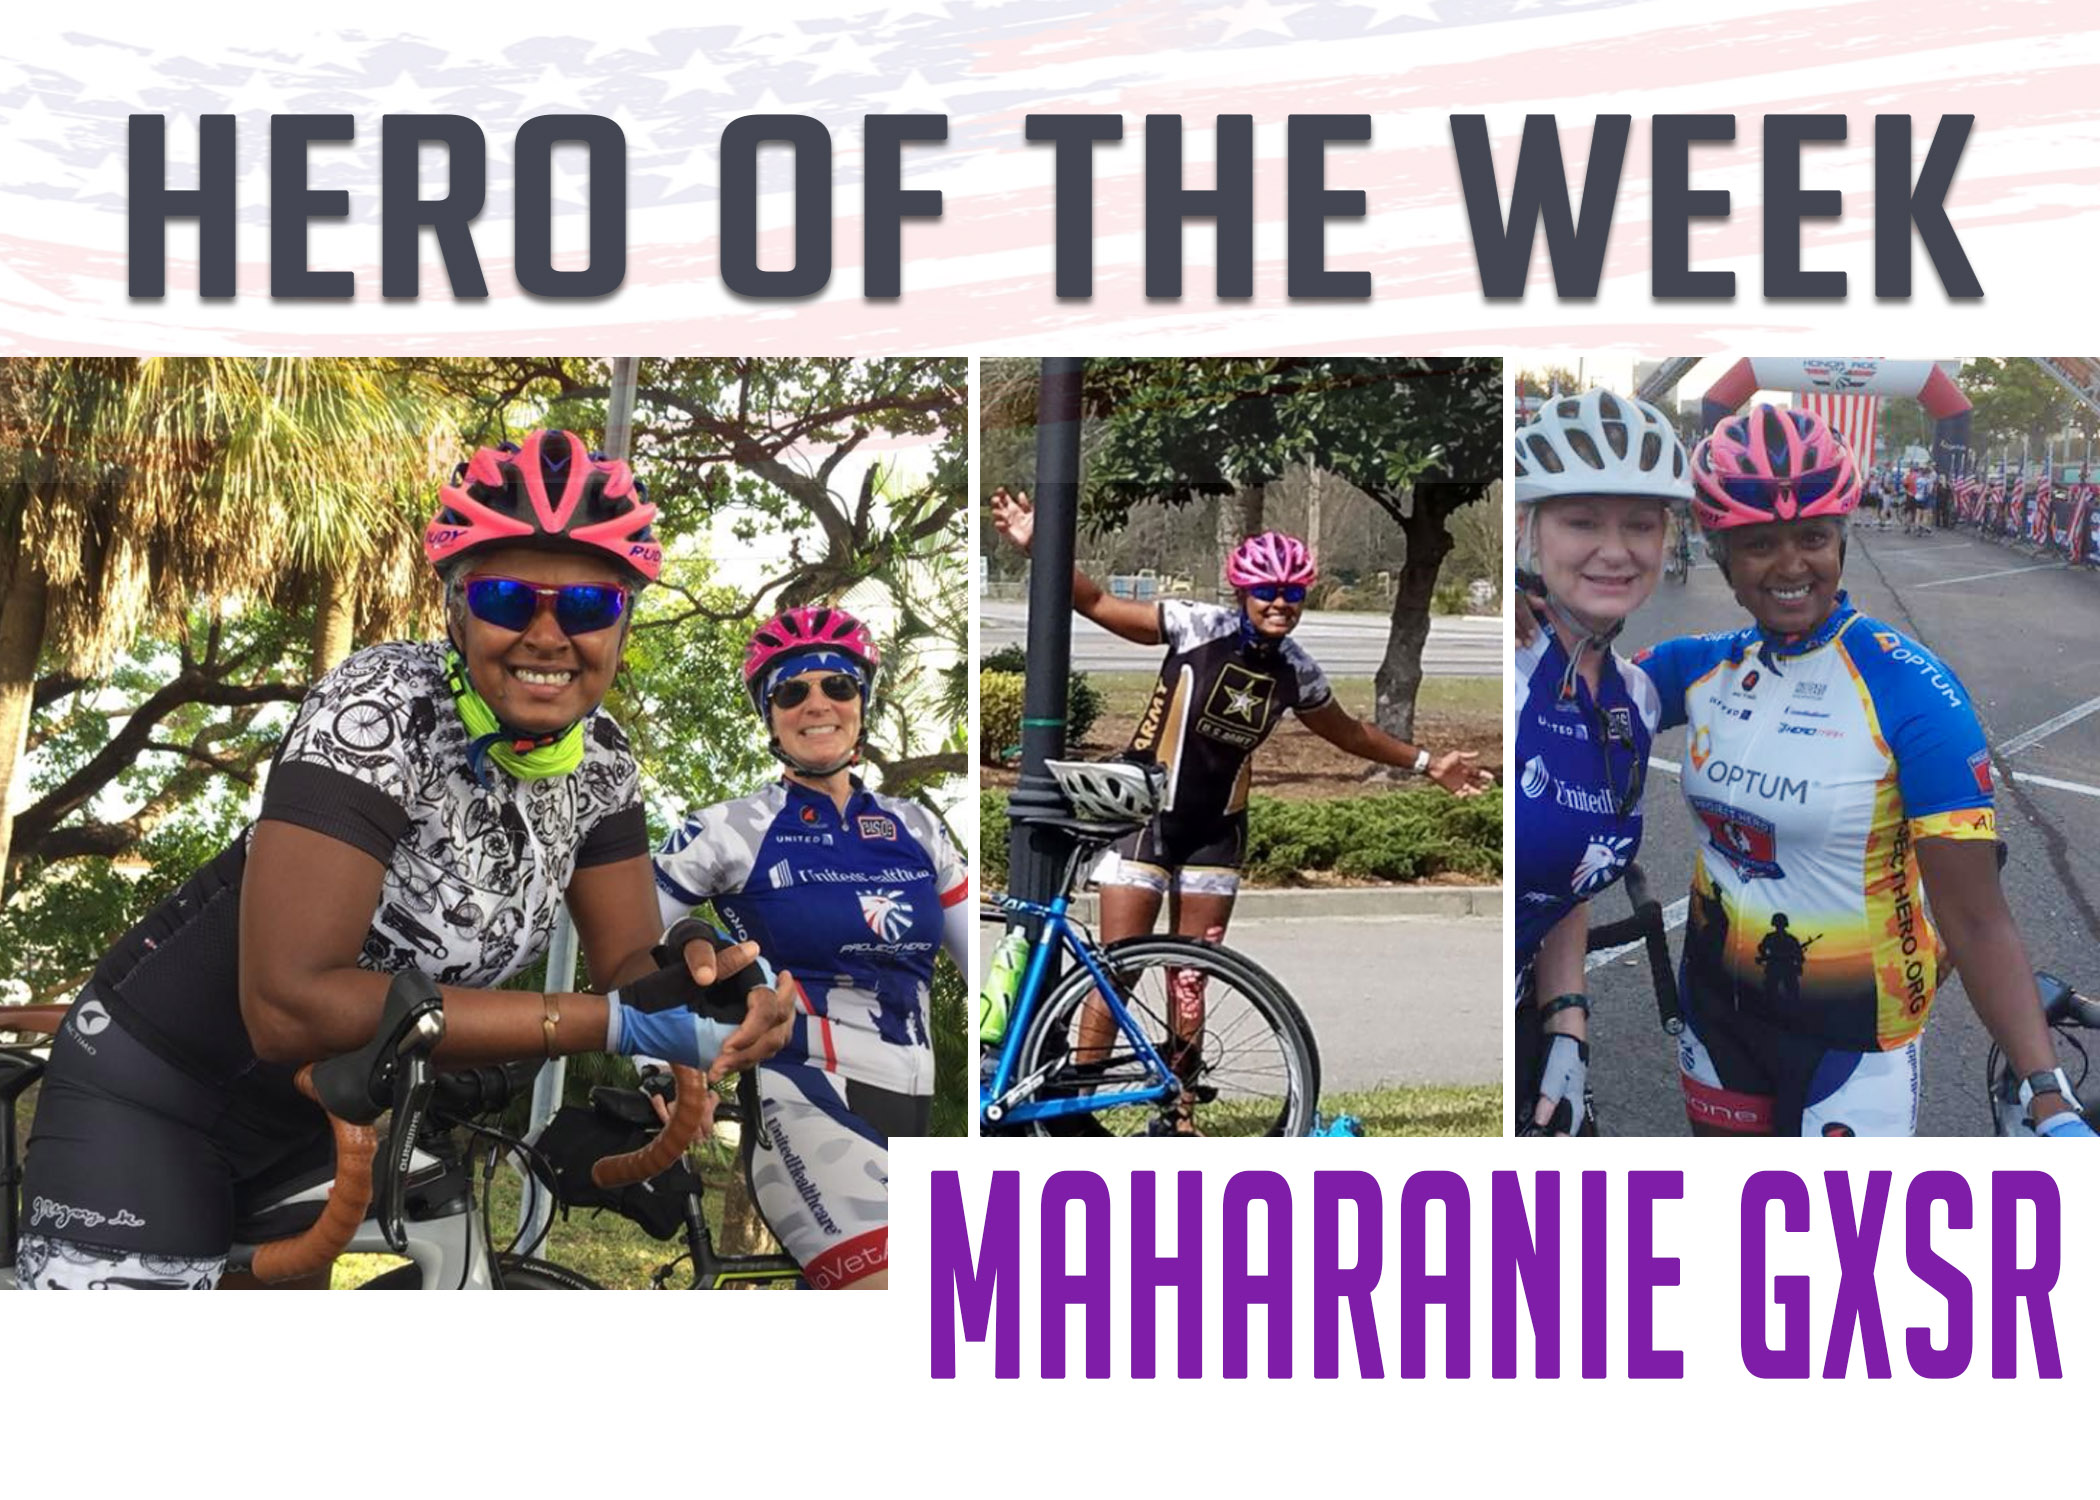 Hero of the Week: Maharanie Gxsr